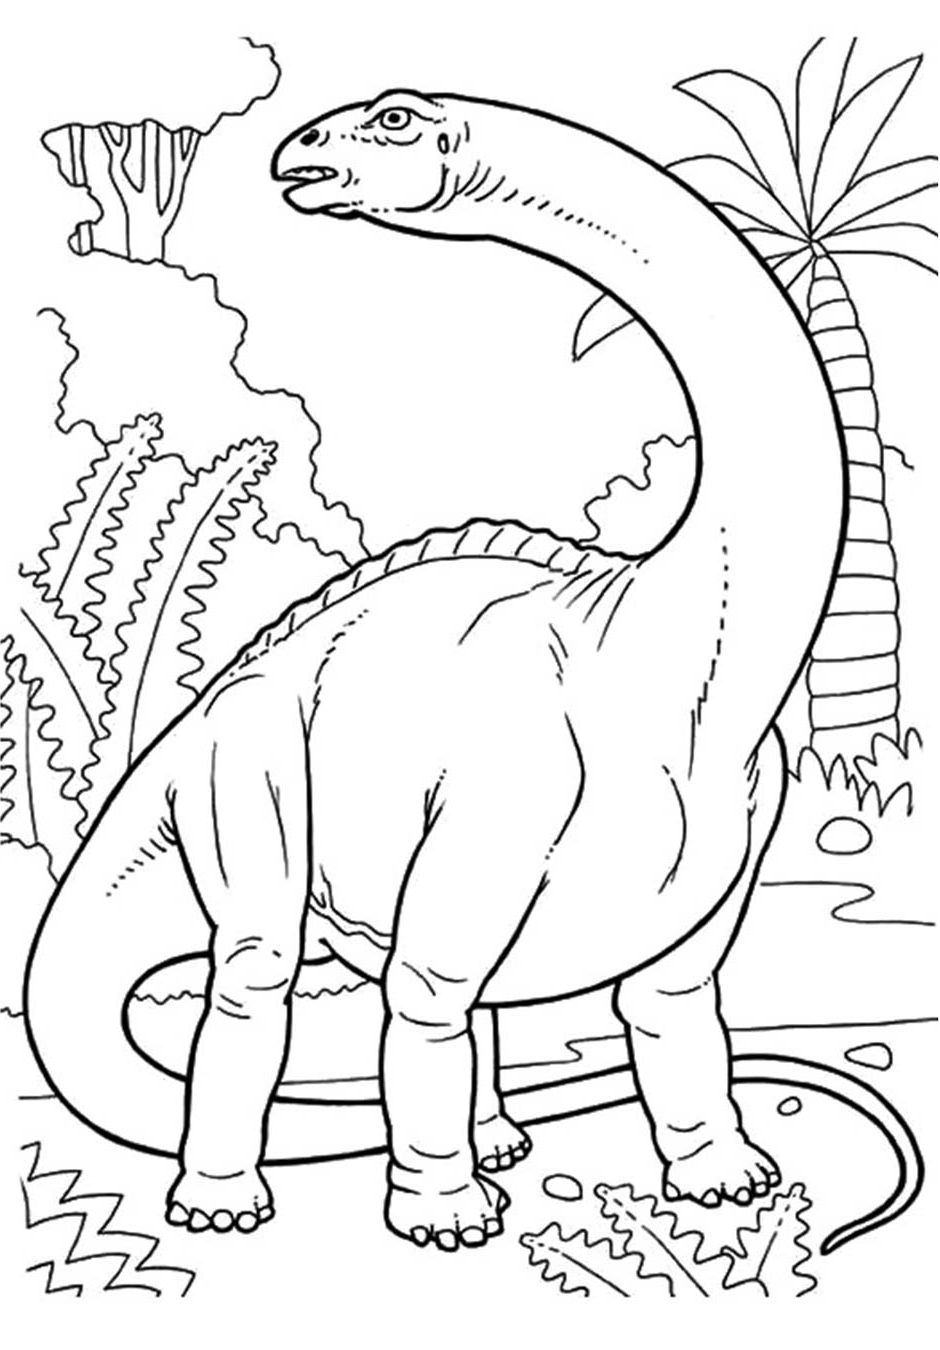 dinosaurs pictures to color dinosaur coloring pages skip to my lou pictures dinosaurs to color